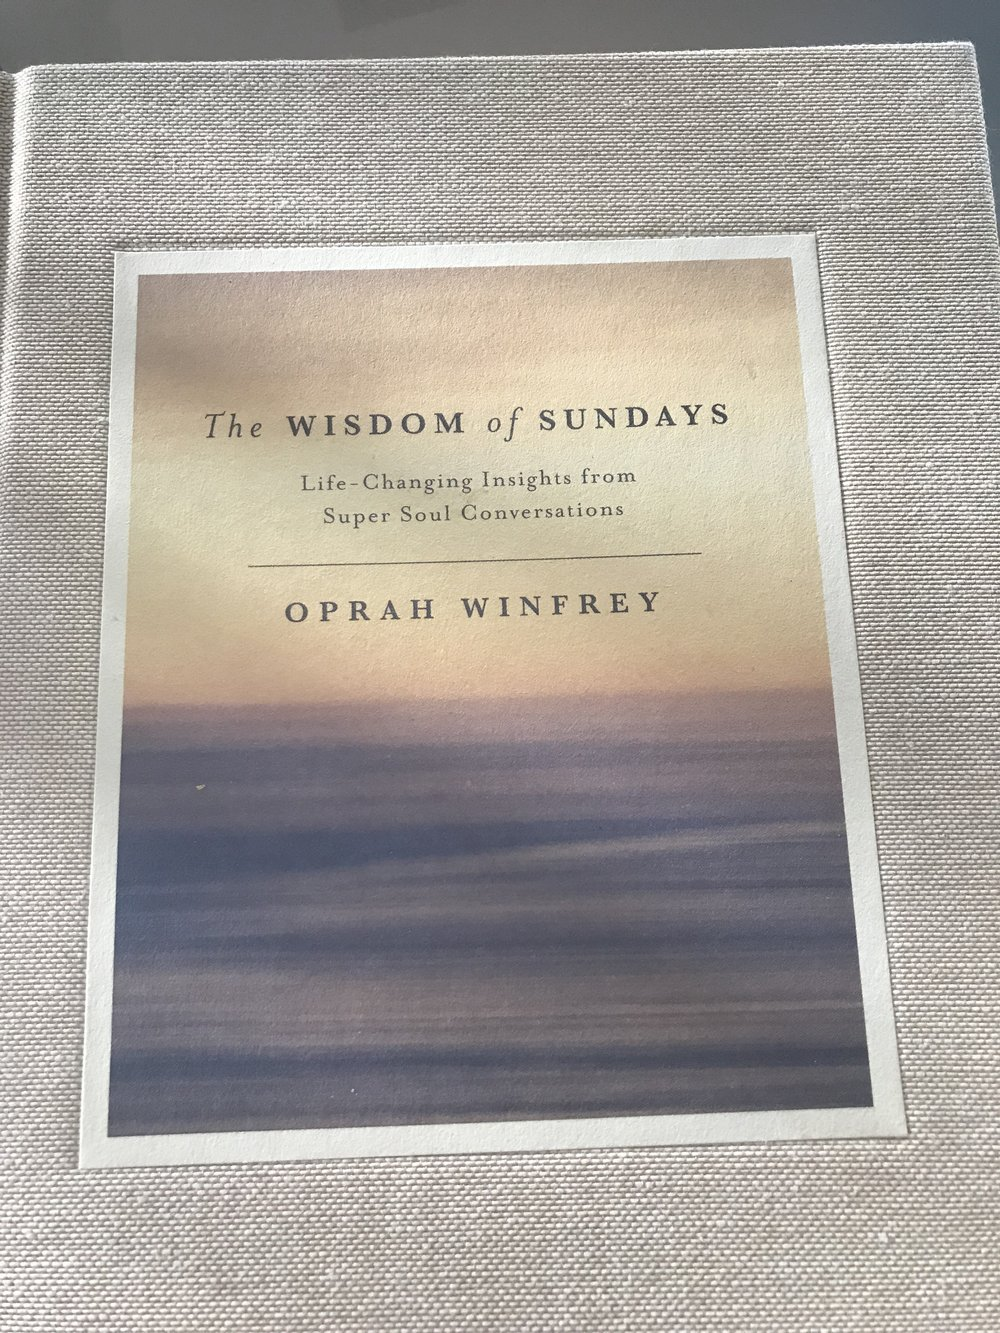 oprah winfrey the wisdom of sundays